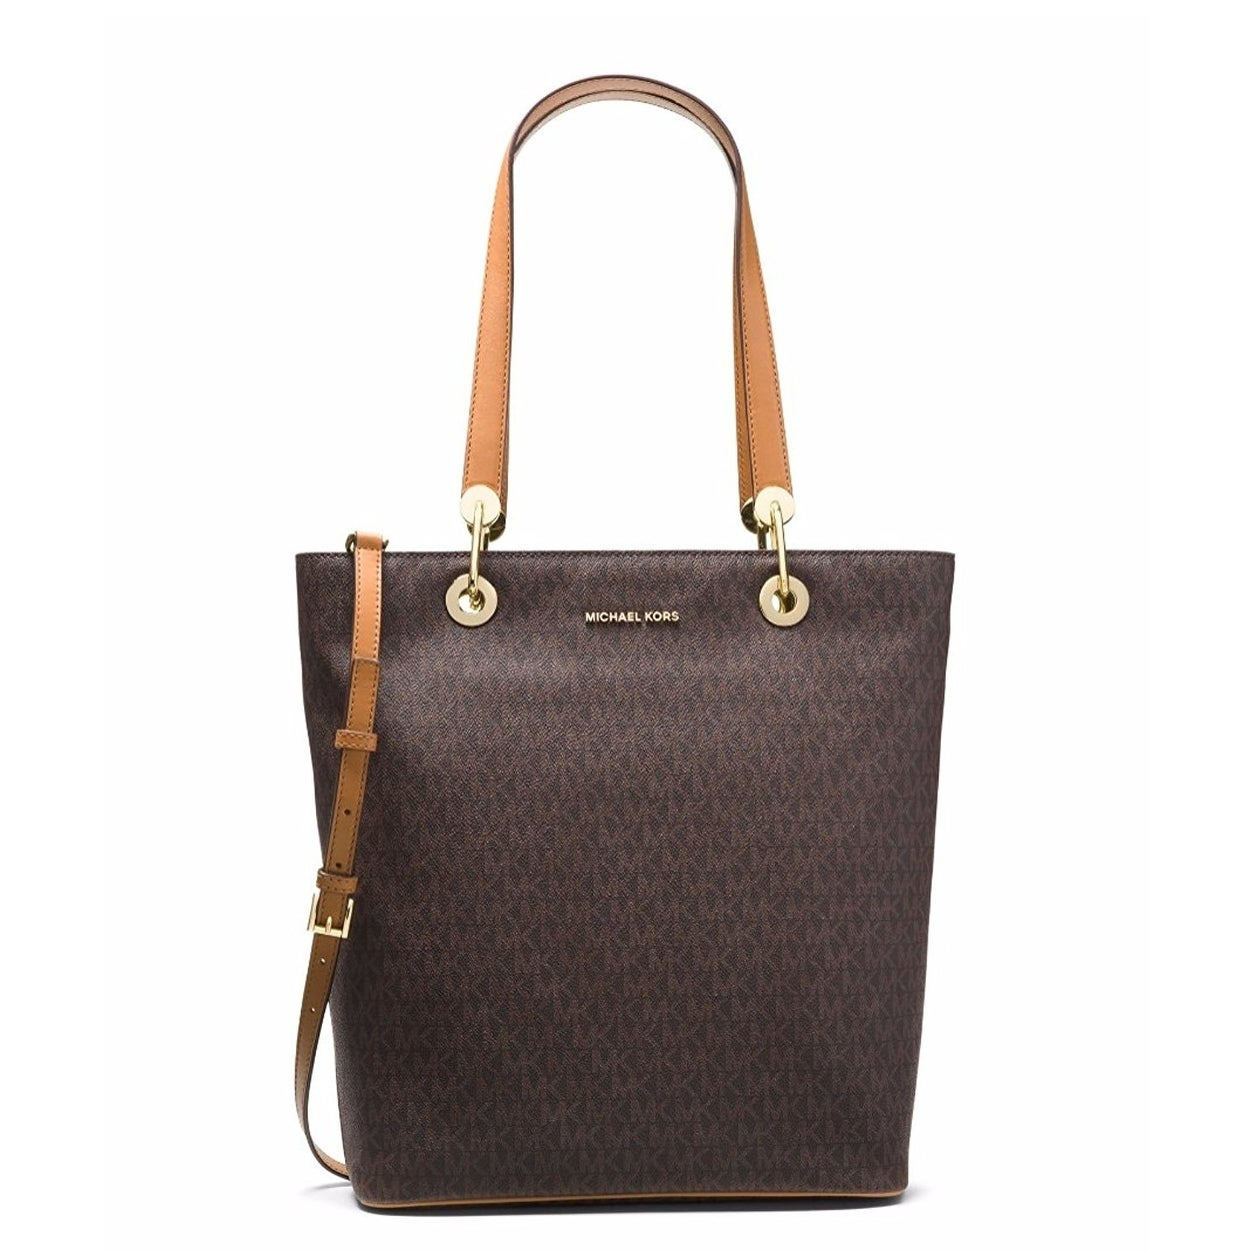 Buy Michael Kors Leather Bags Online at Overstock  bb2266be679a8